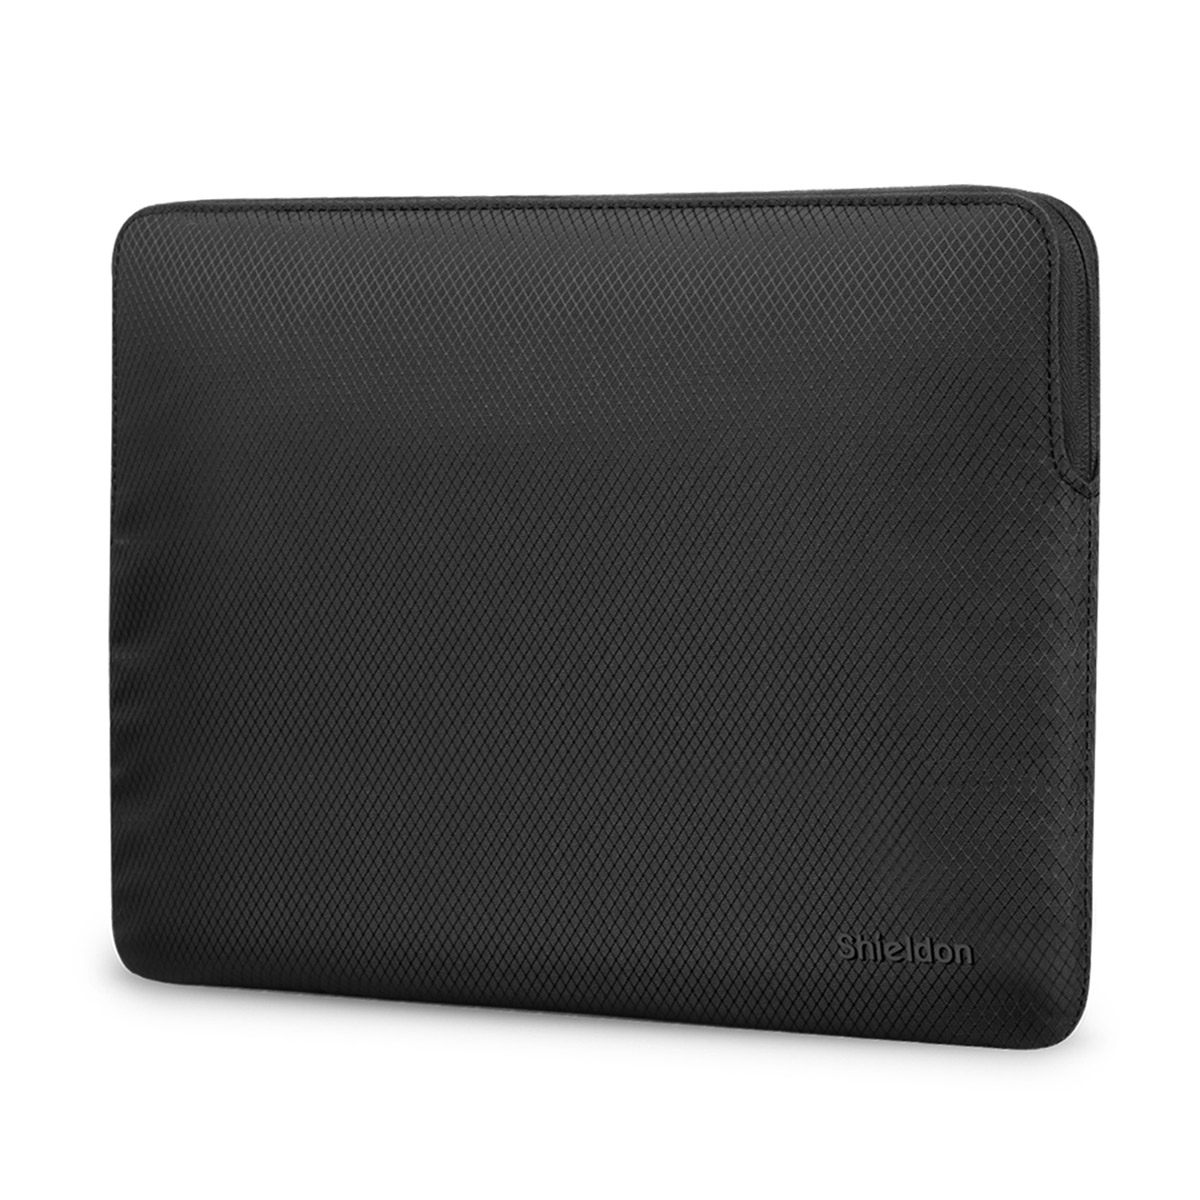 """SHIELDON 13.3-Inch Laptop Sleeve Bag Compatible with 13-13.3"""" iPad/Tablet/Notebook"""